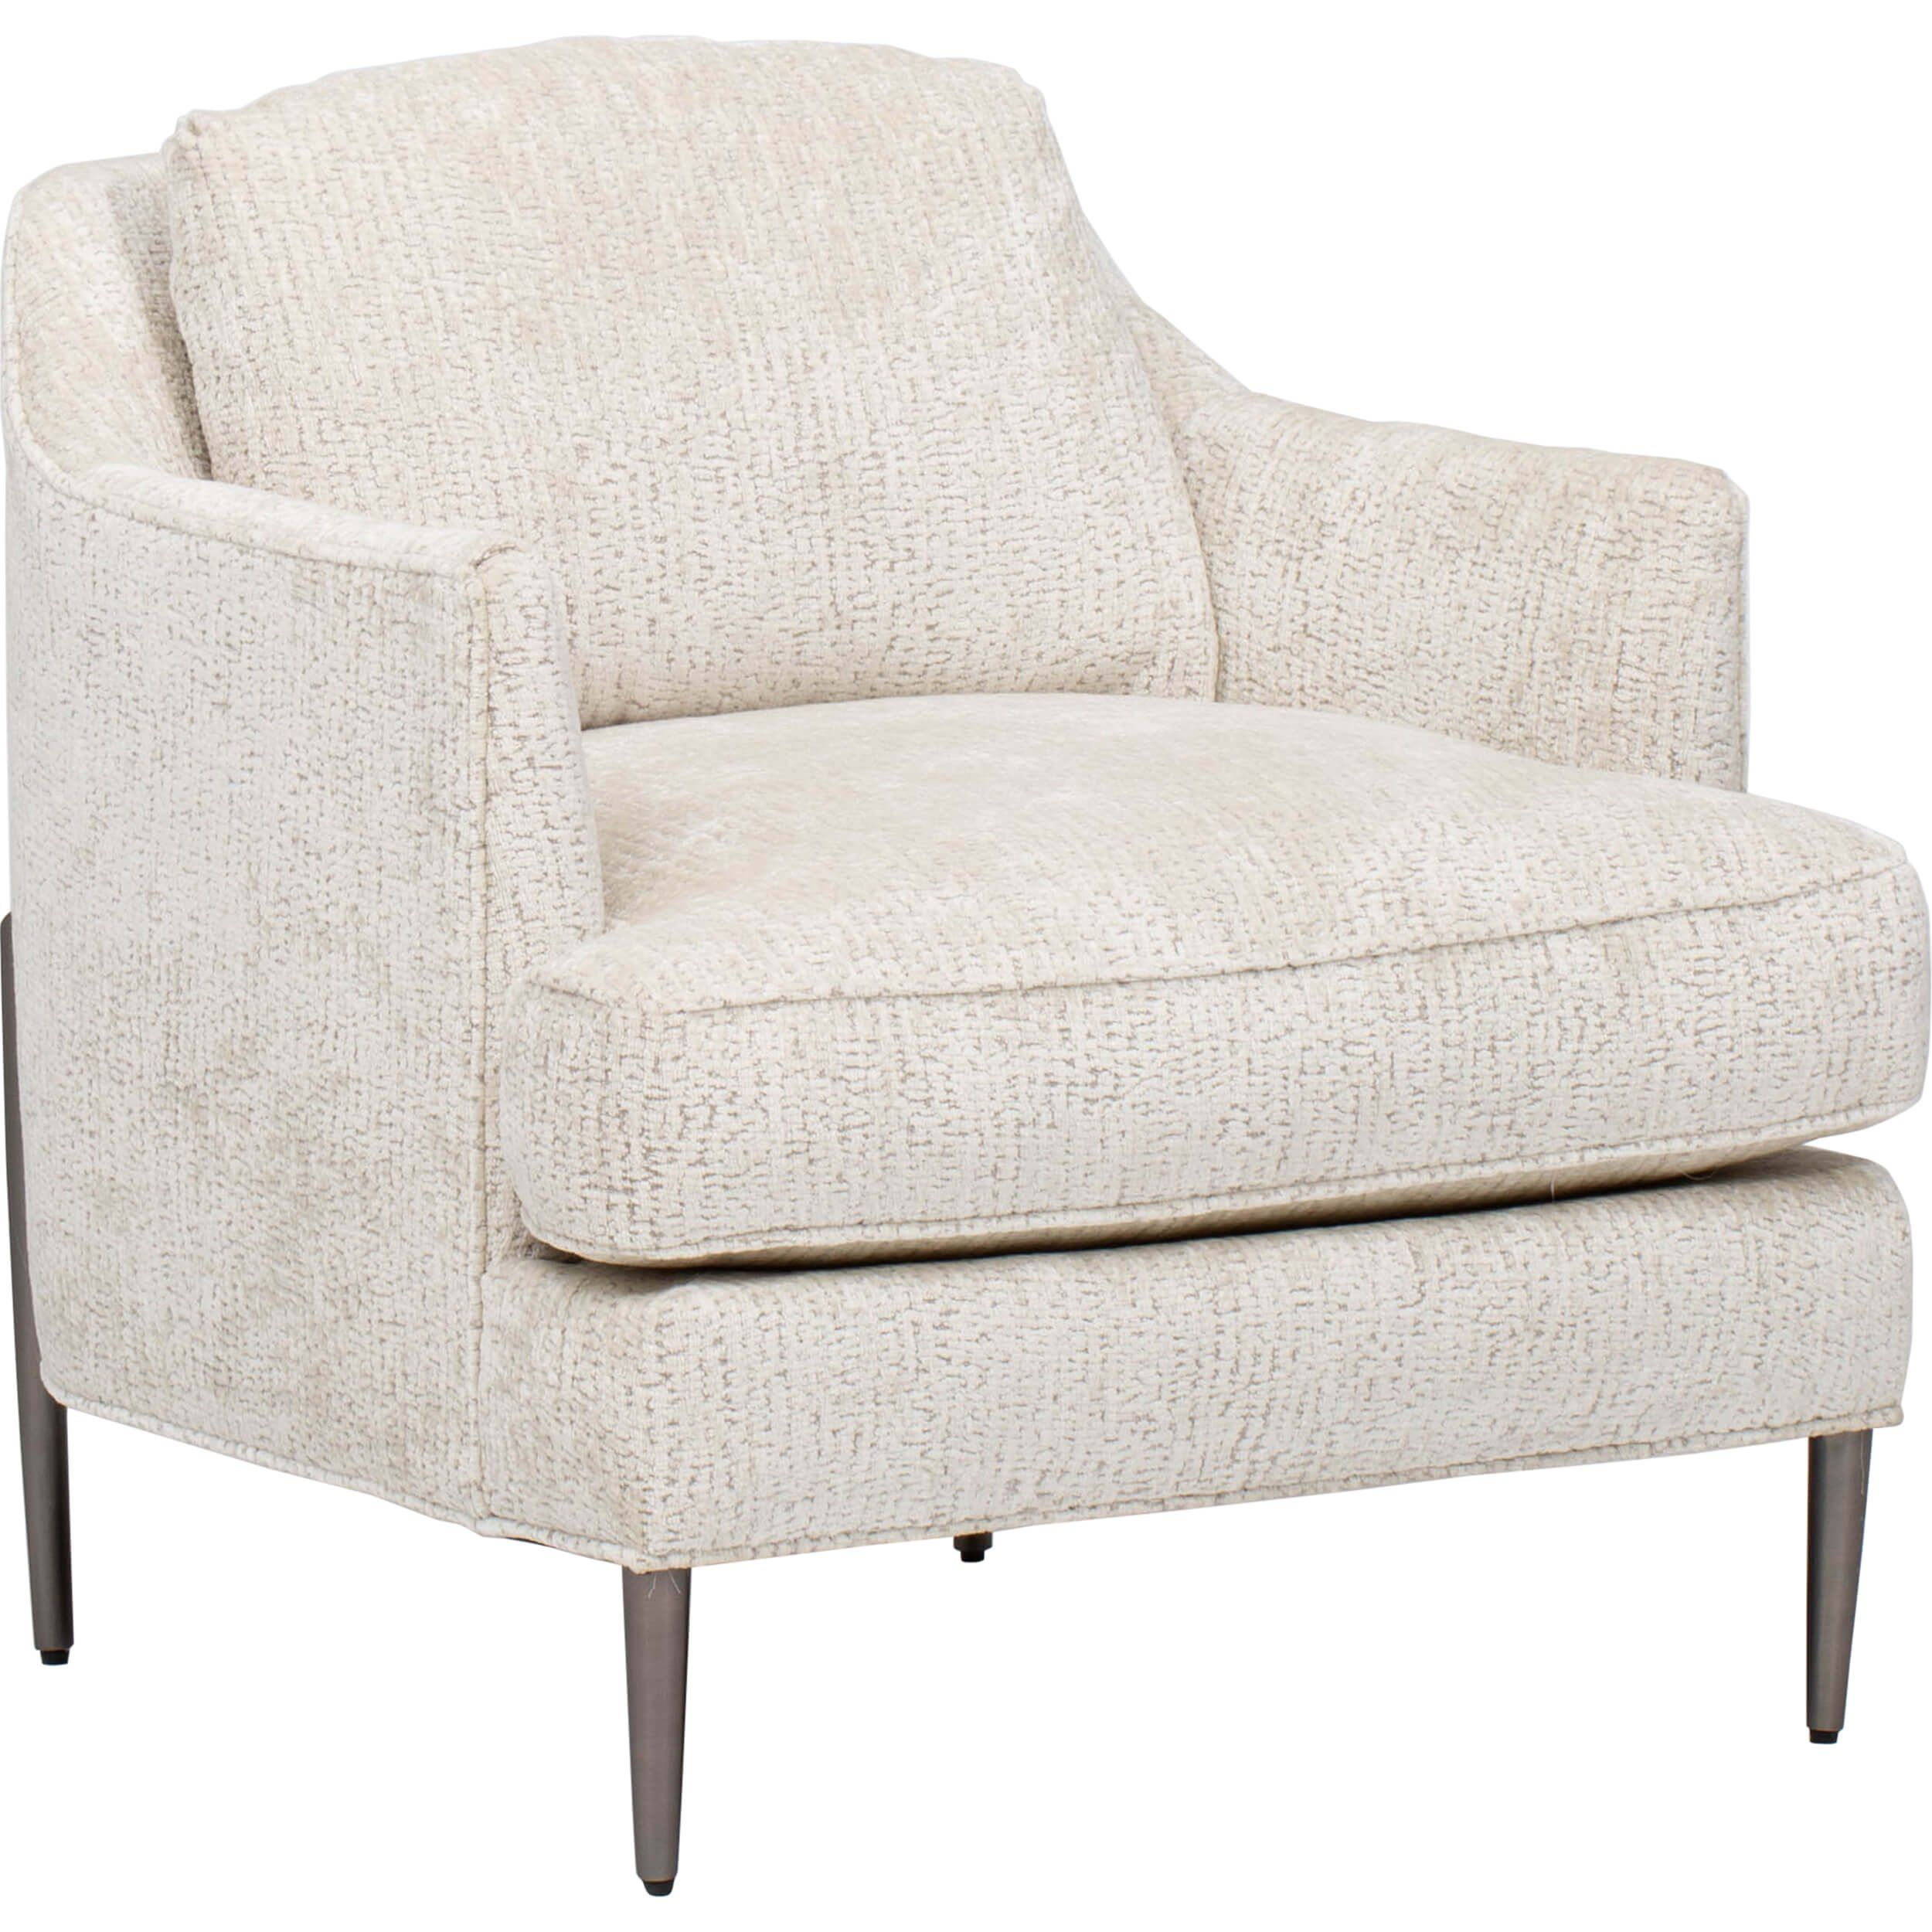 Juliet Chair Pearl Chair Accent Chairs For Living Room